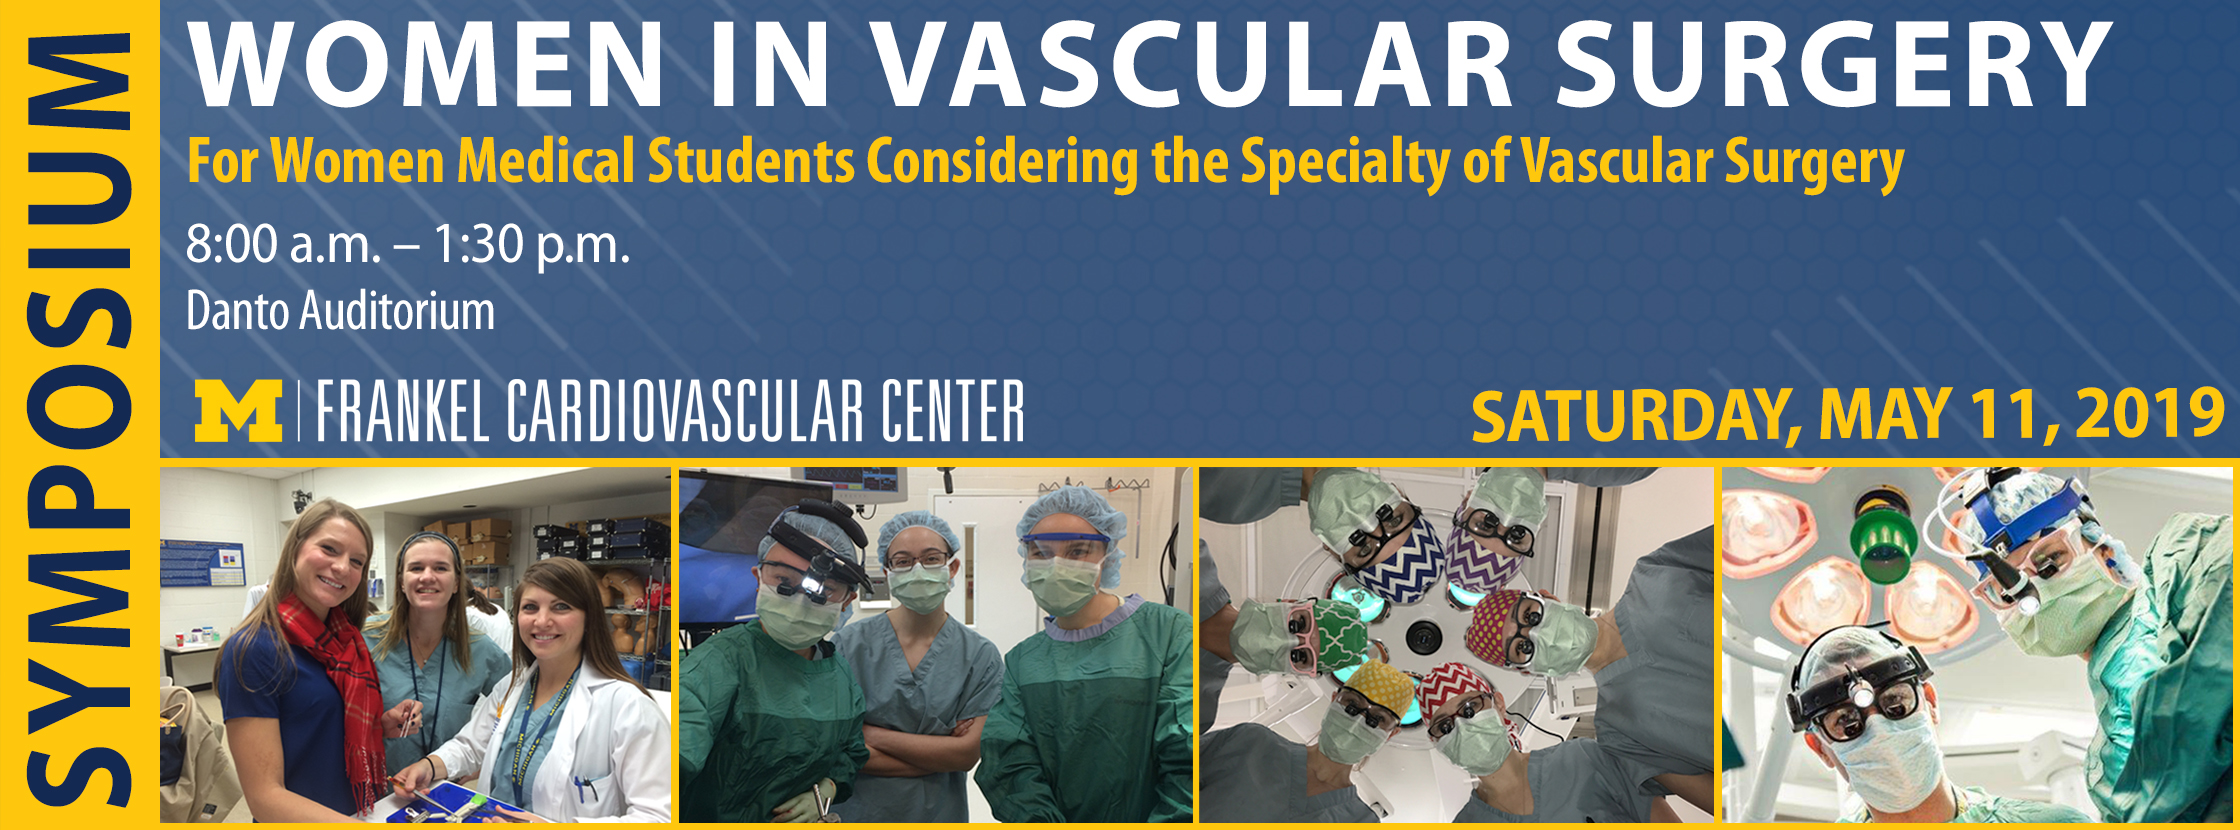 Women in Vascular Surgery Symposium: For Women Medical Student Considering the Specialty of Vascular Surgery on Saturday, May 11, 2019 from 8:30 am - 1:00 pm Danto Auditorium at Frankel Cardiovascular Center